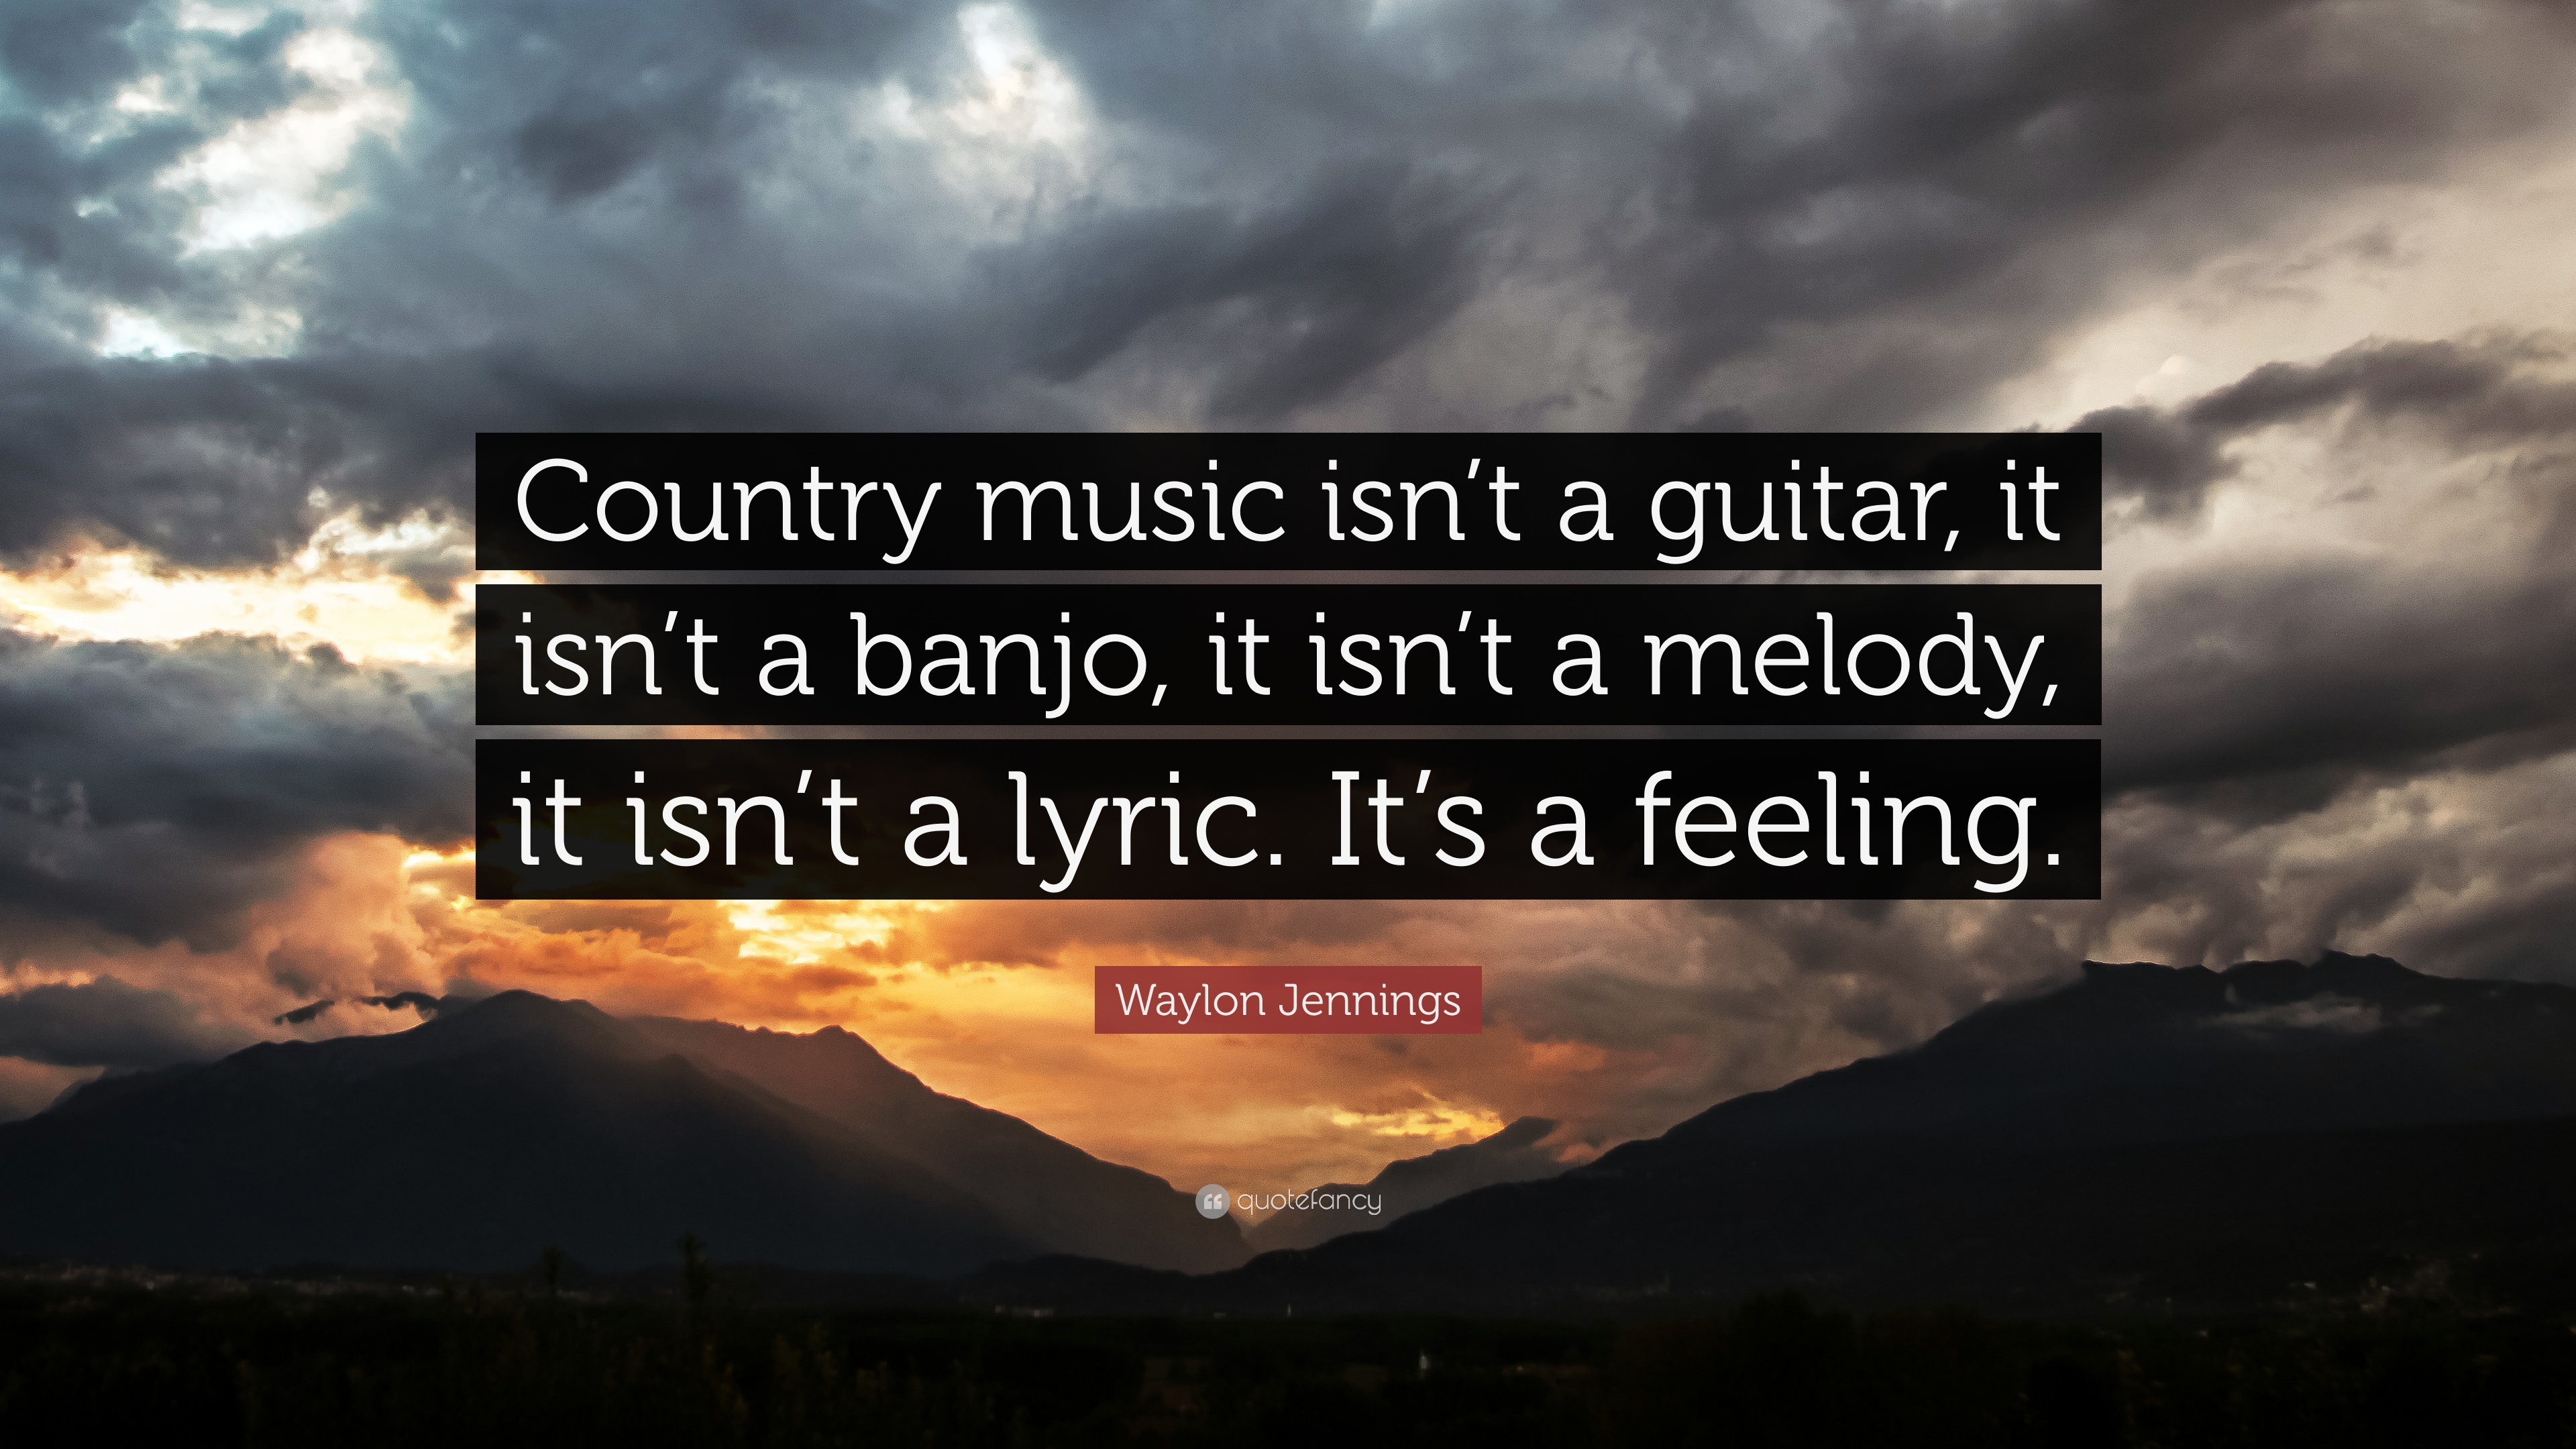 Must see Wallpaper Music Country - 968721-Waylon-Jennings-Quote-Country-music-isn-t-a-guitar-it-isn-t-a  2018_187549.jpg